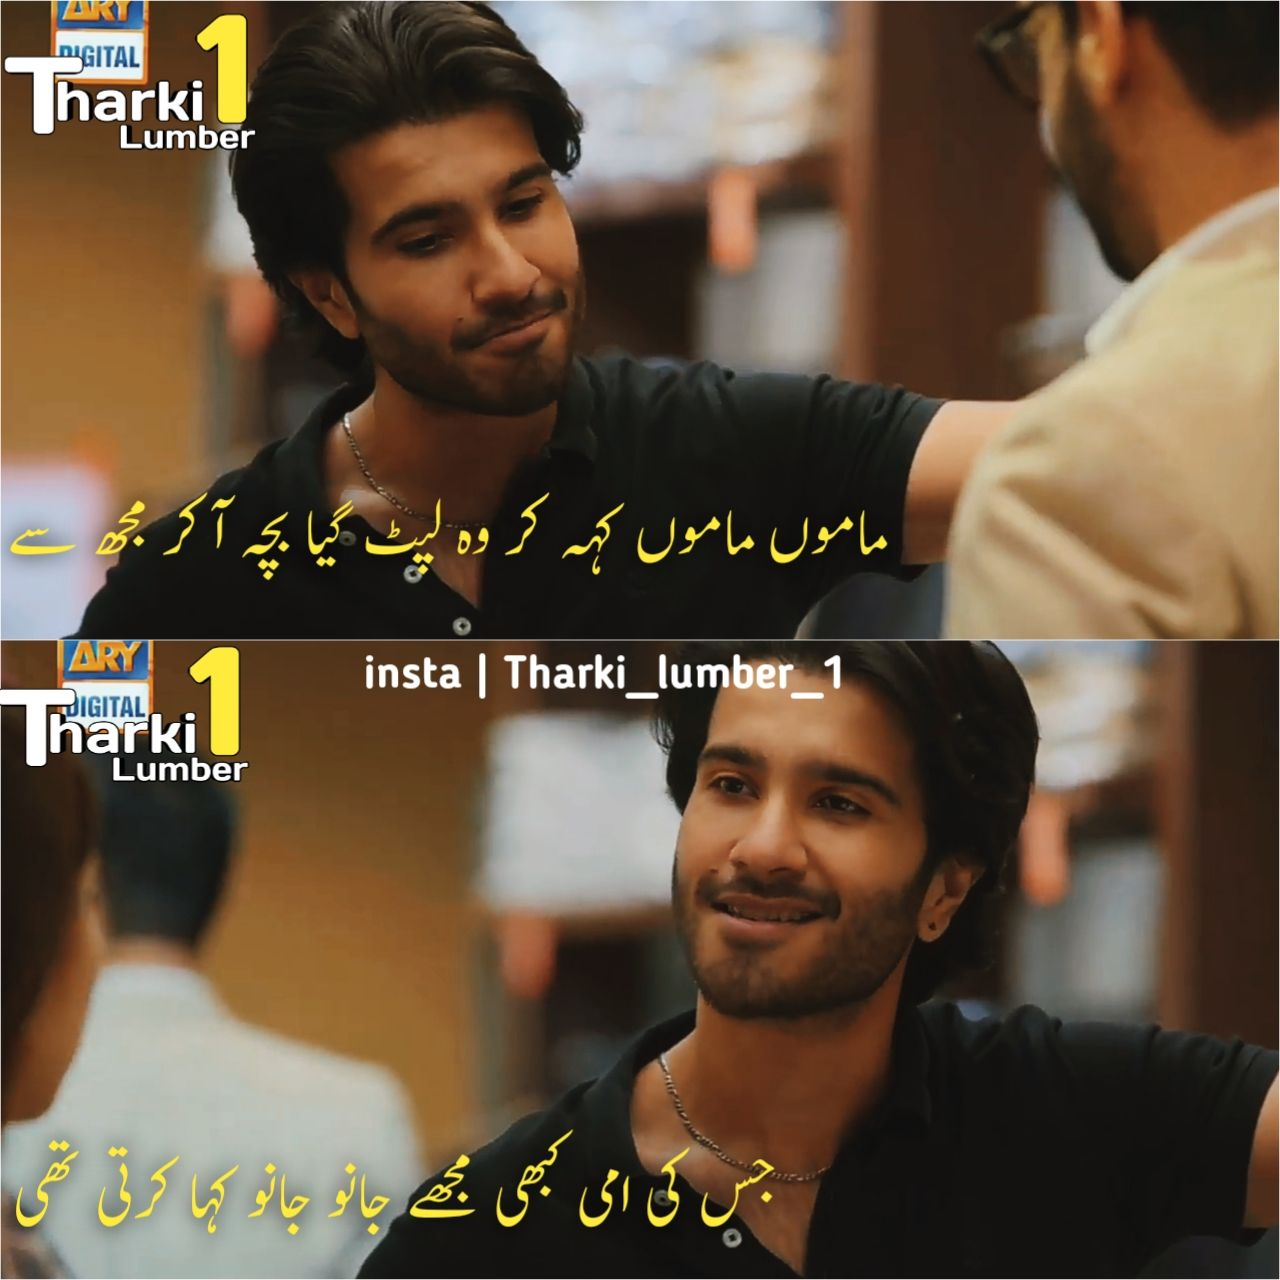 Funny Meme Urdu Joke Double Meanig Jokes Of 2020 Friends Quotes Funny Really Funny Funny Memes